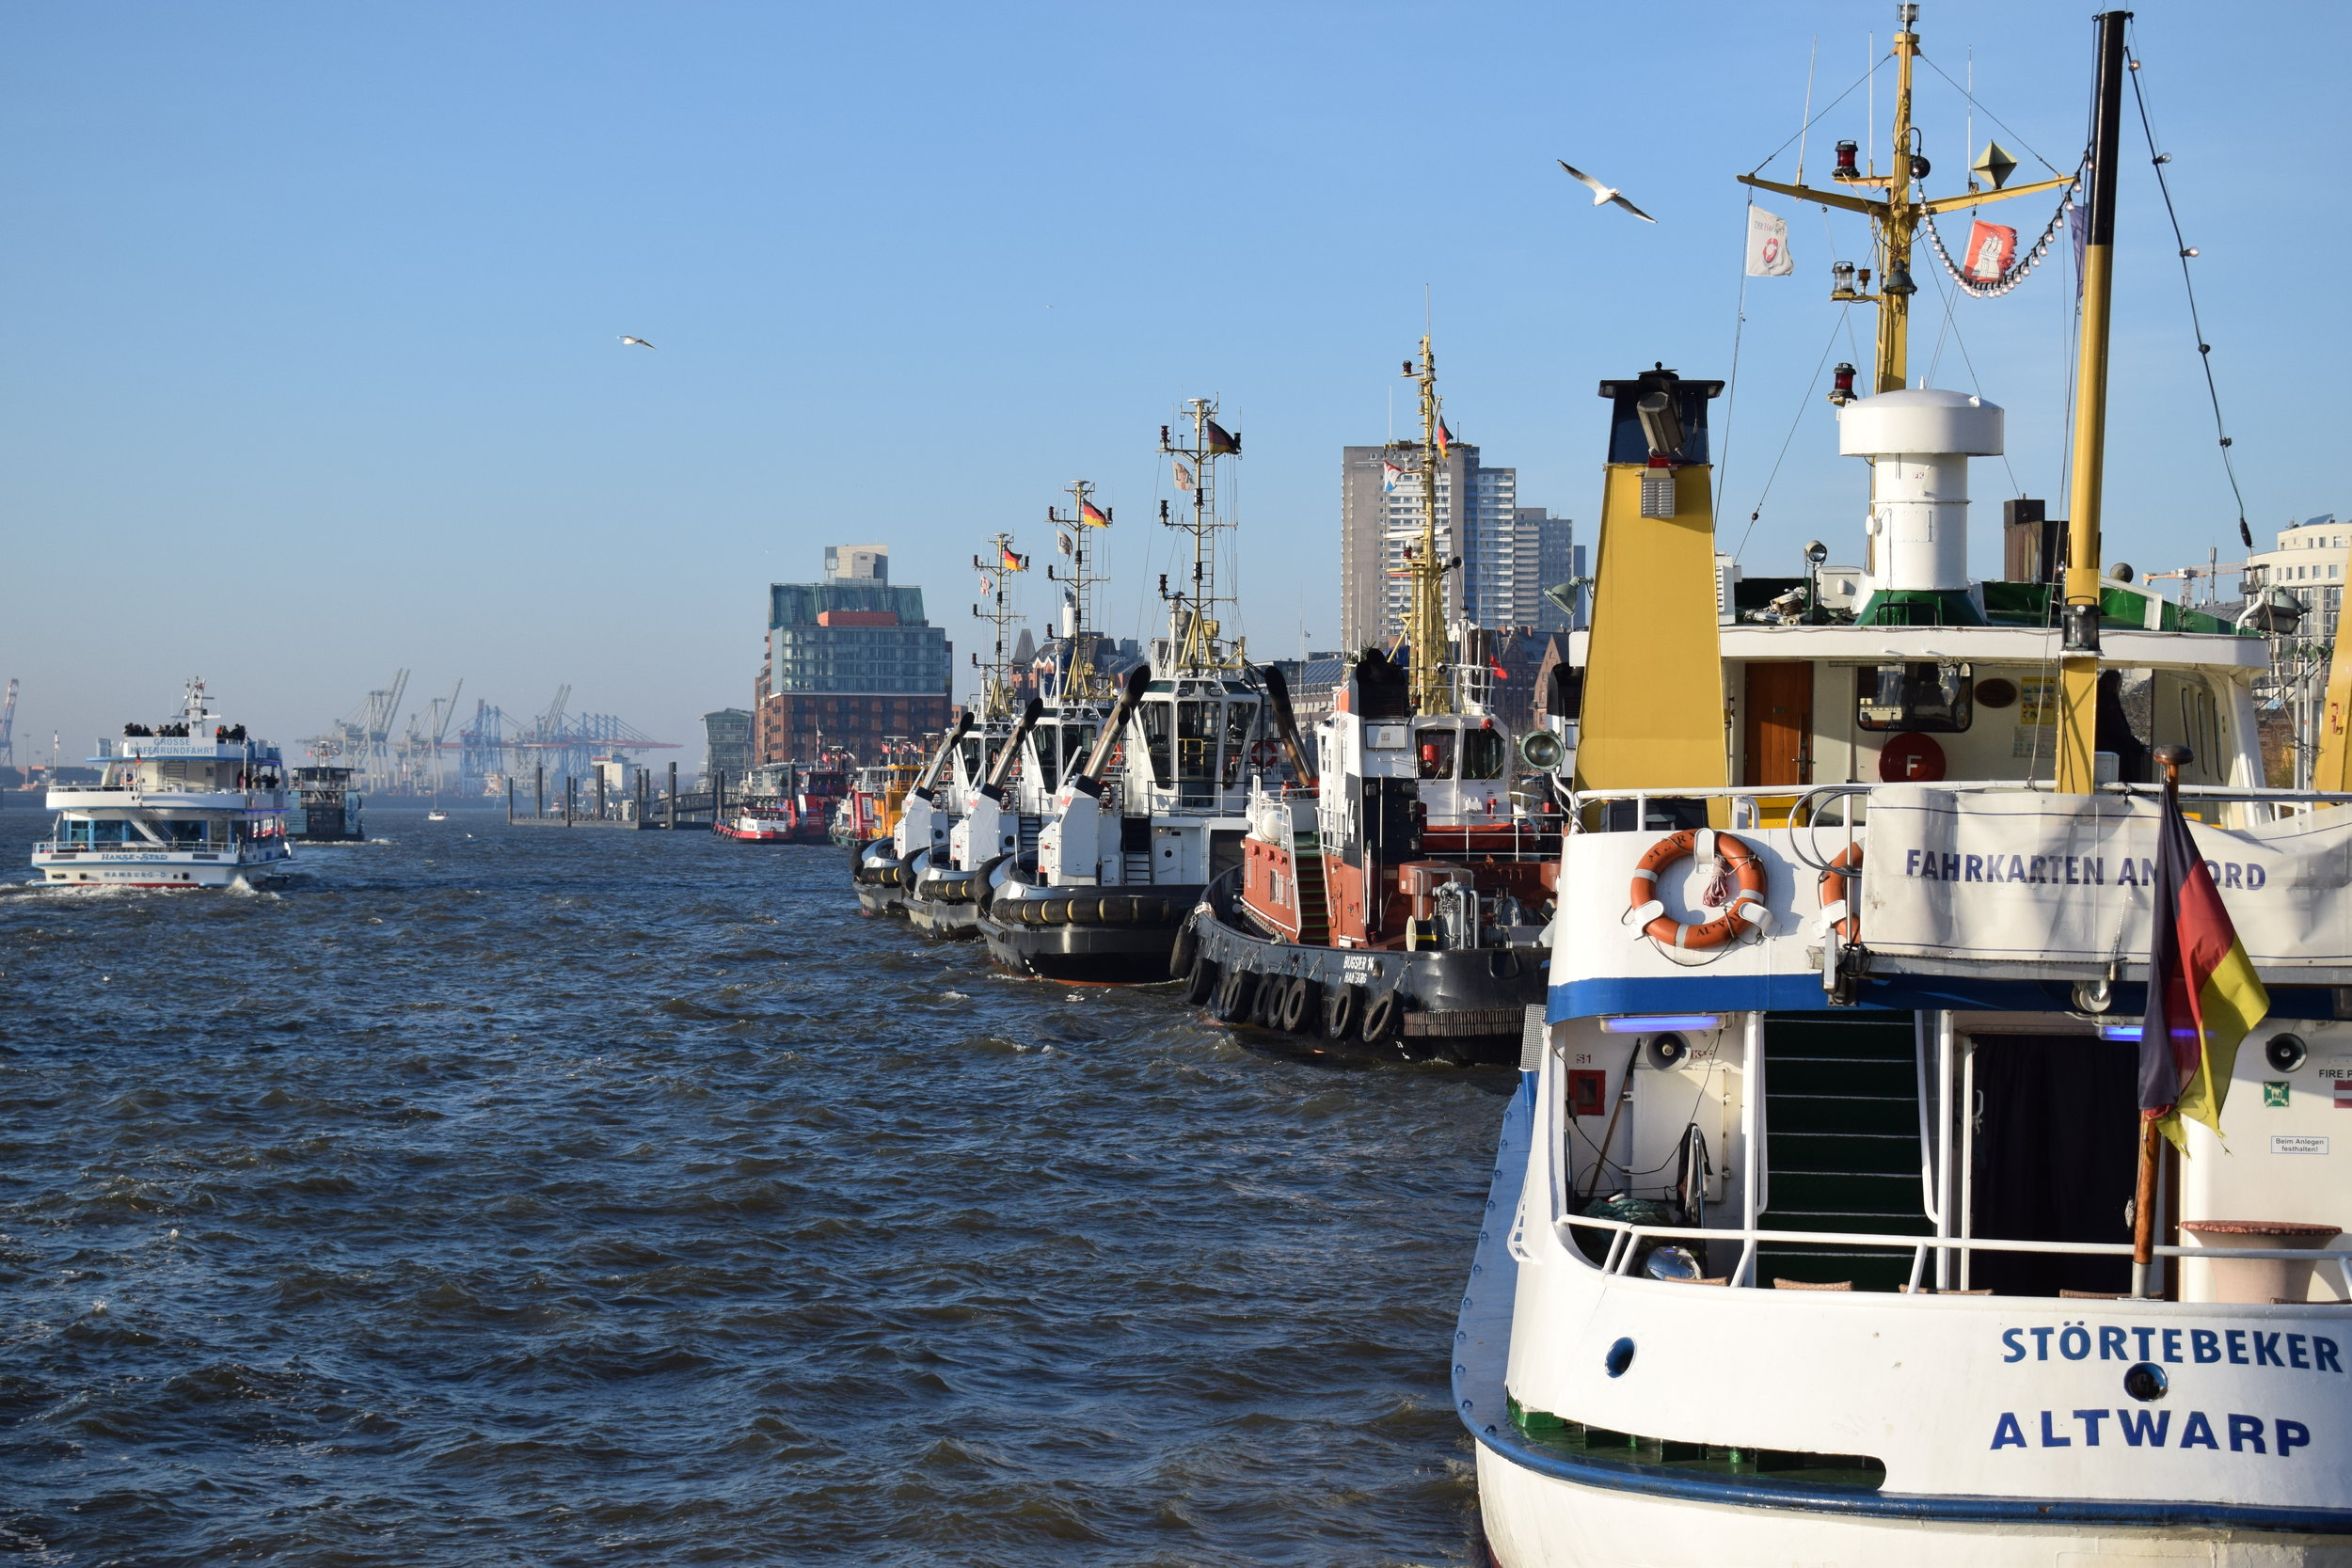 Harbour Cruises are popular with tourists, and dozens leave the St Pauli Piers every day.